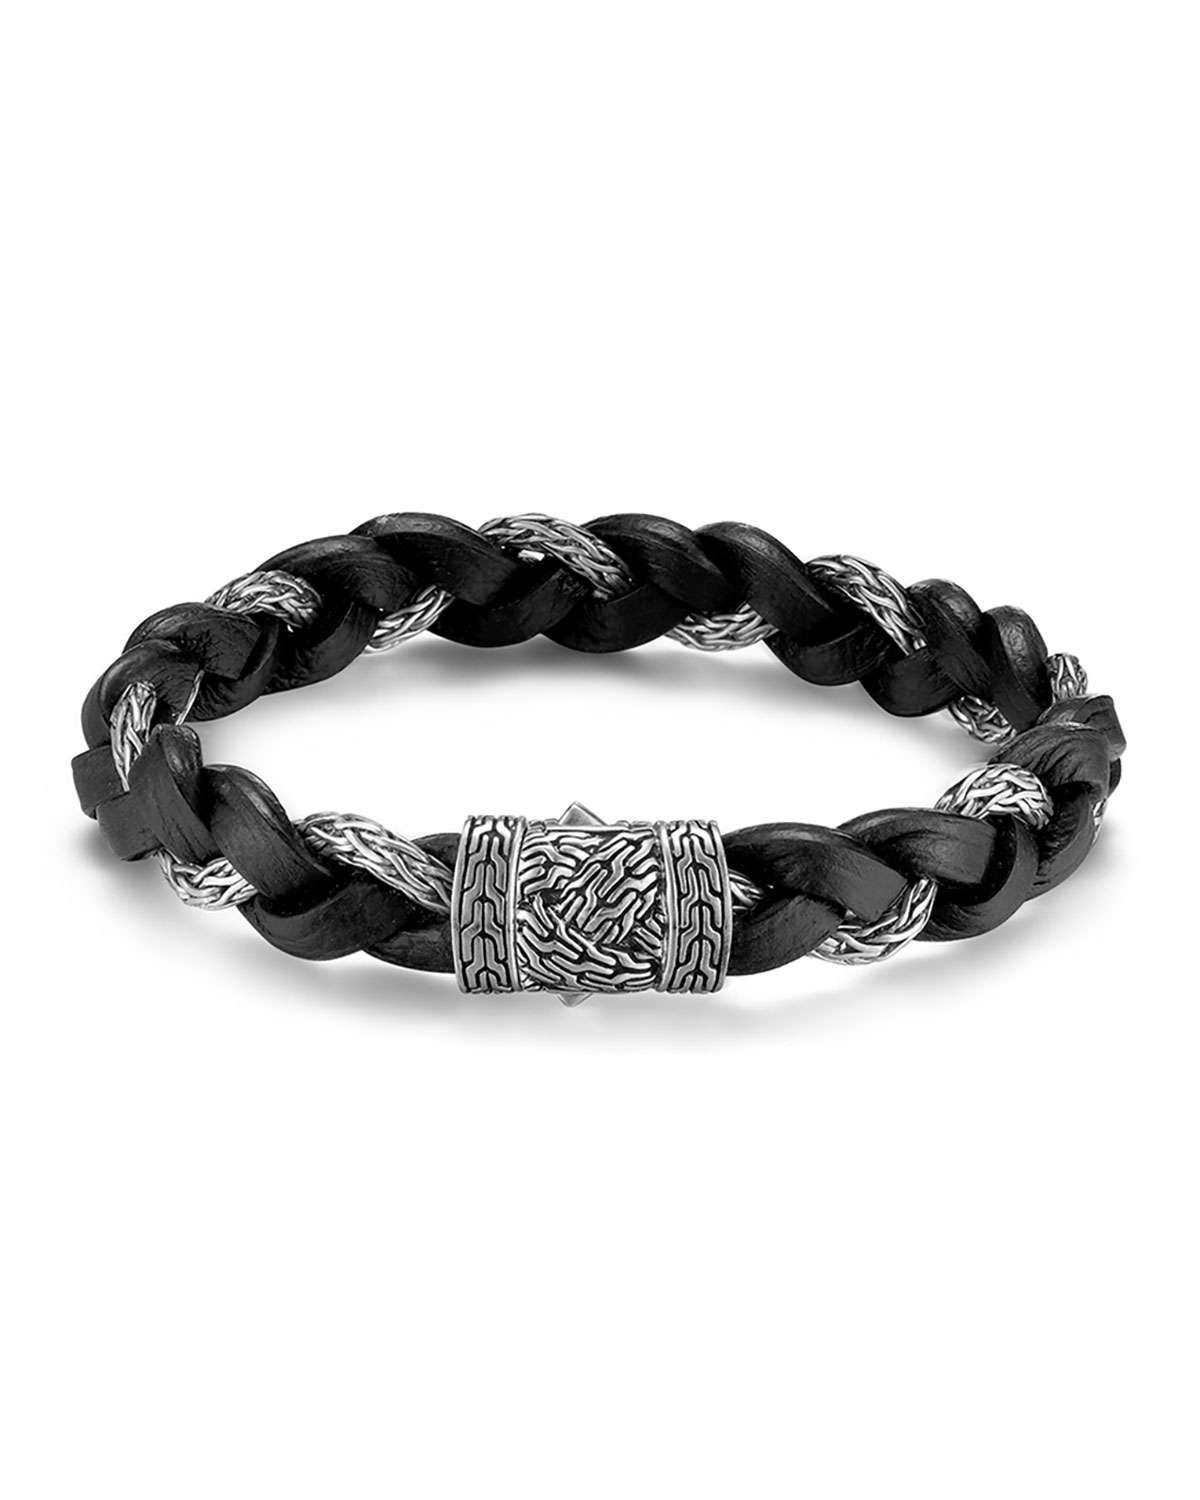 John Hardy Mens Classic Chain Silver Braided Bracelet w/Leather Cord, Size M